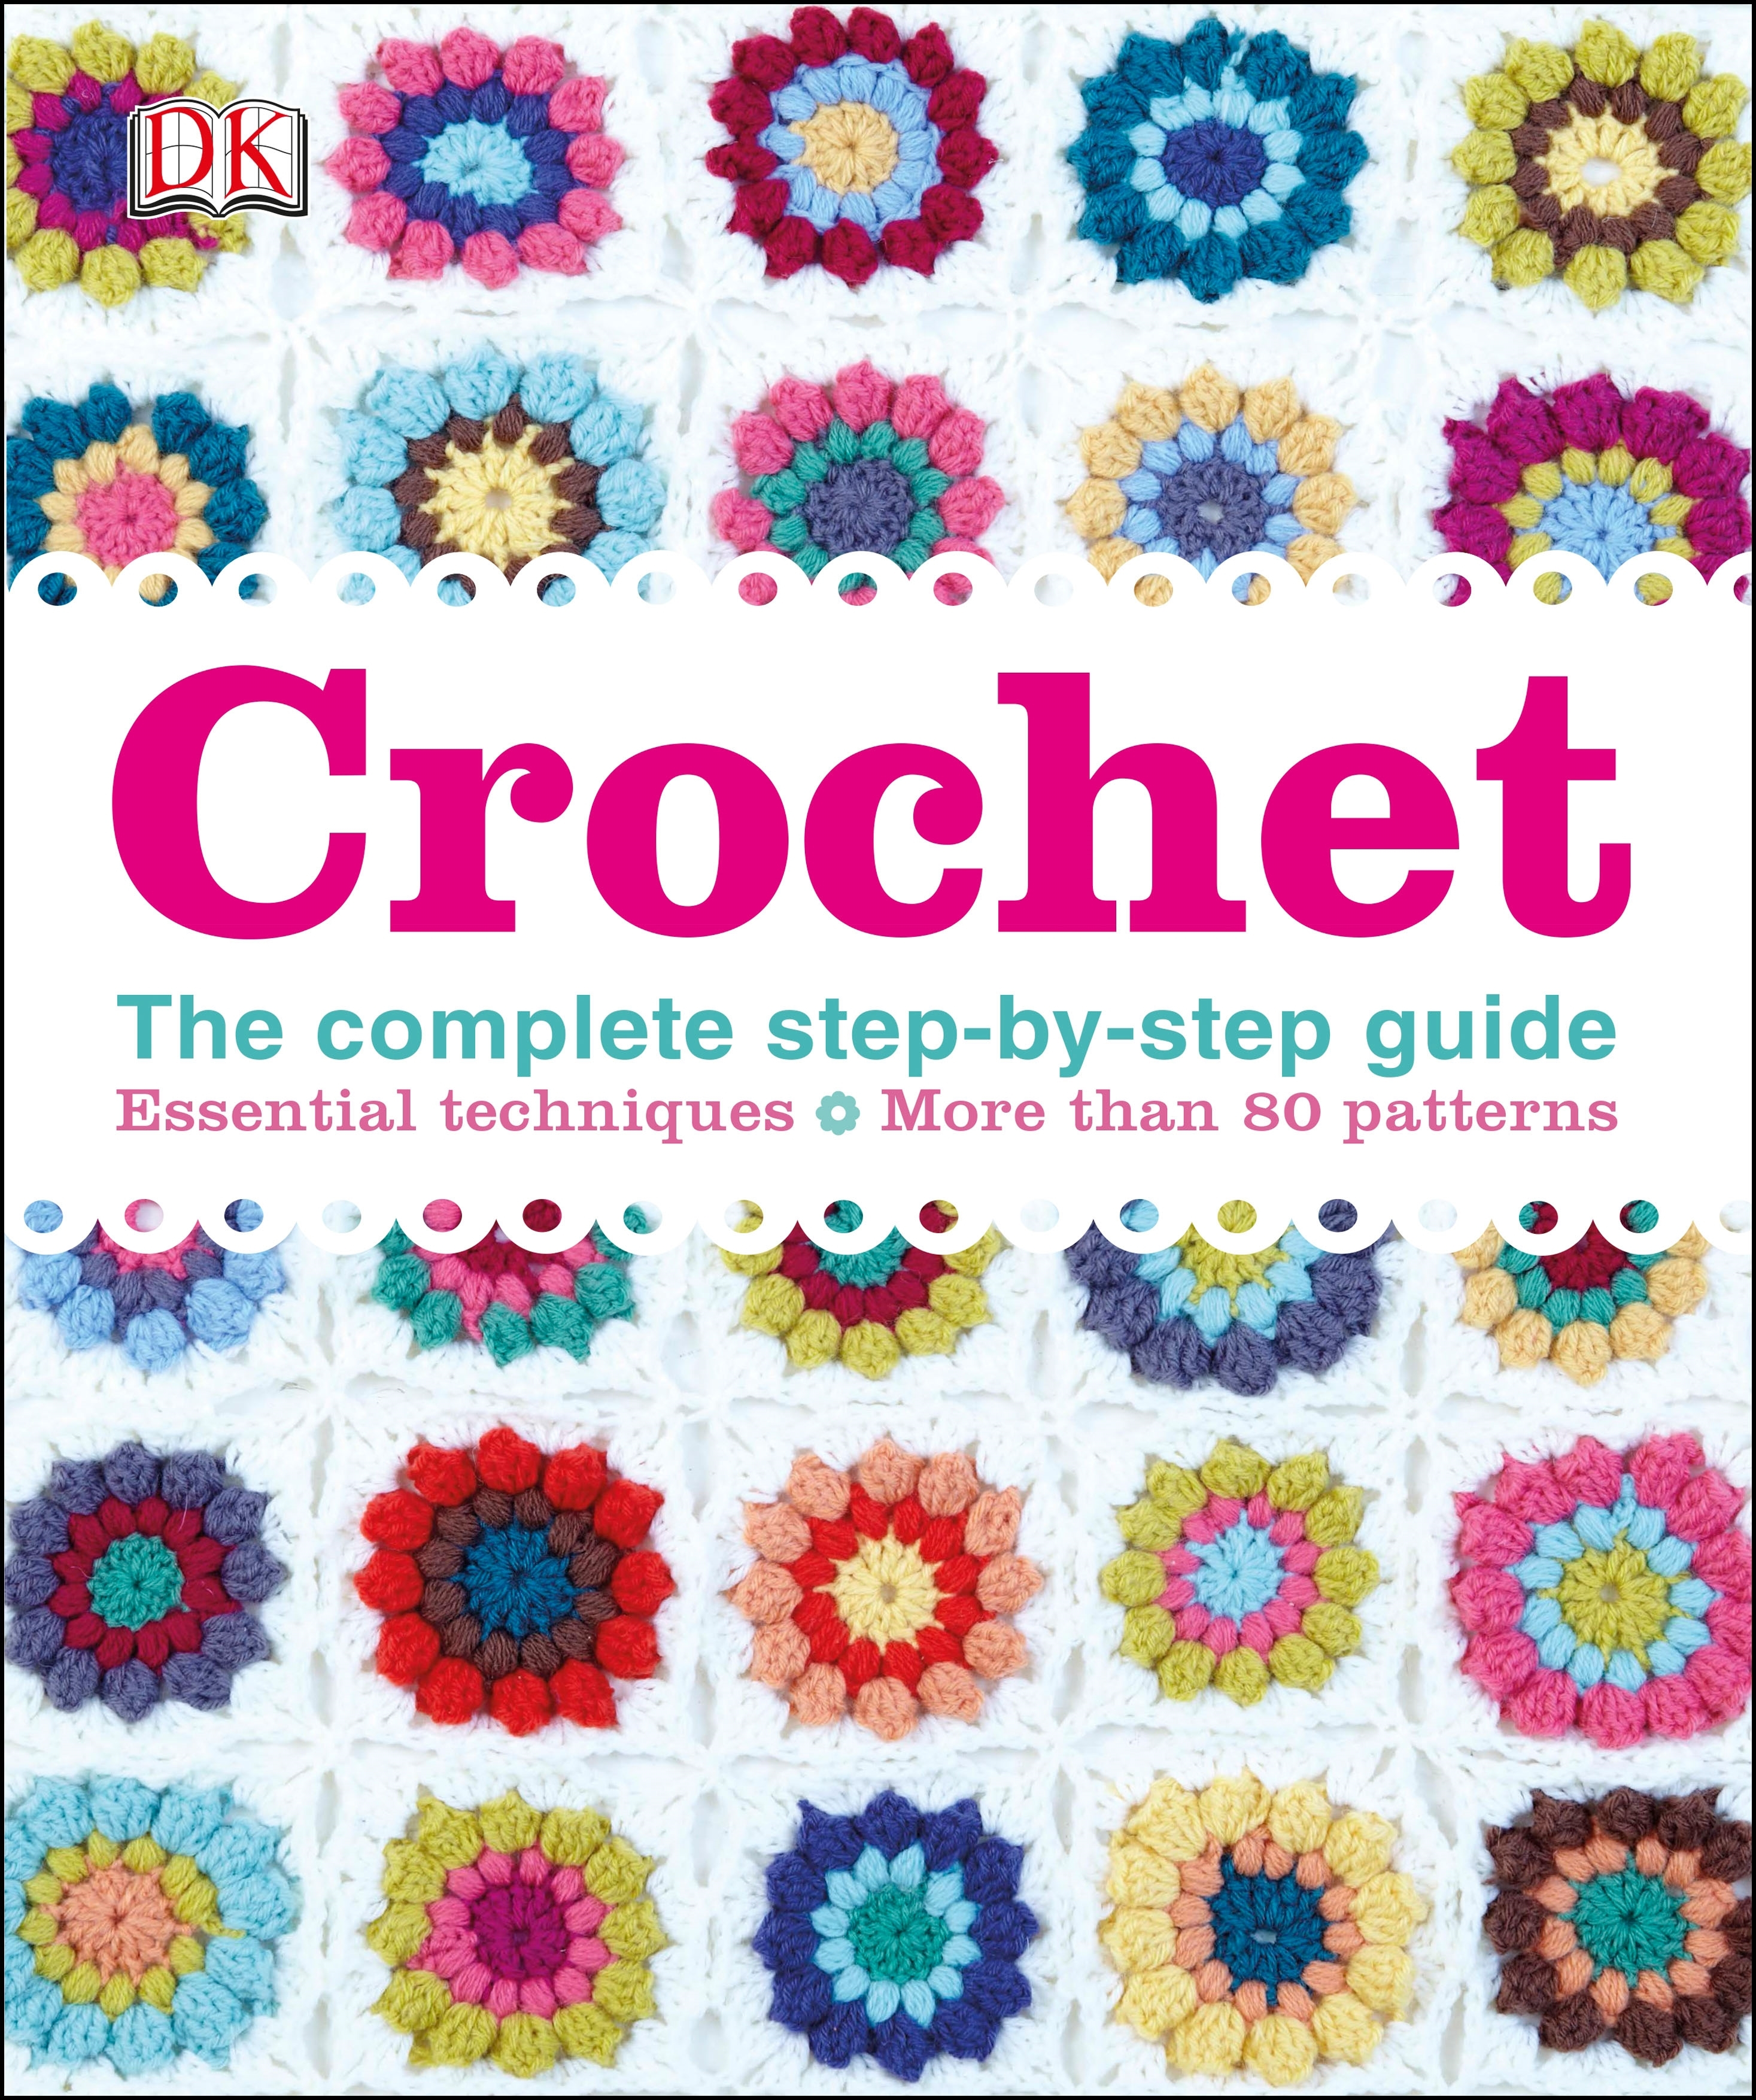 NR - Crochet: The Complete Step-by-Step Guide (Dk)  -  (HB)